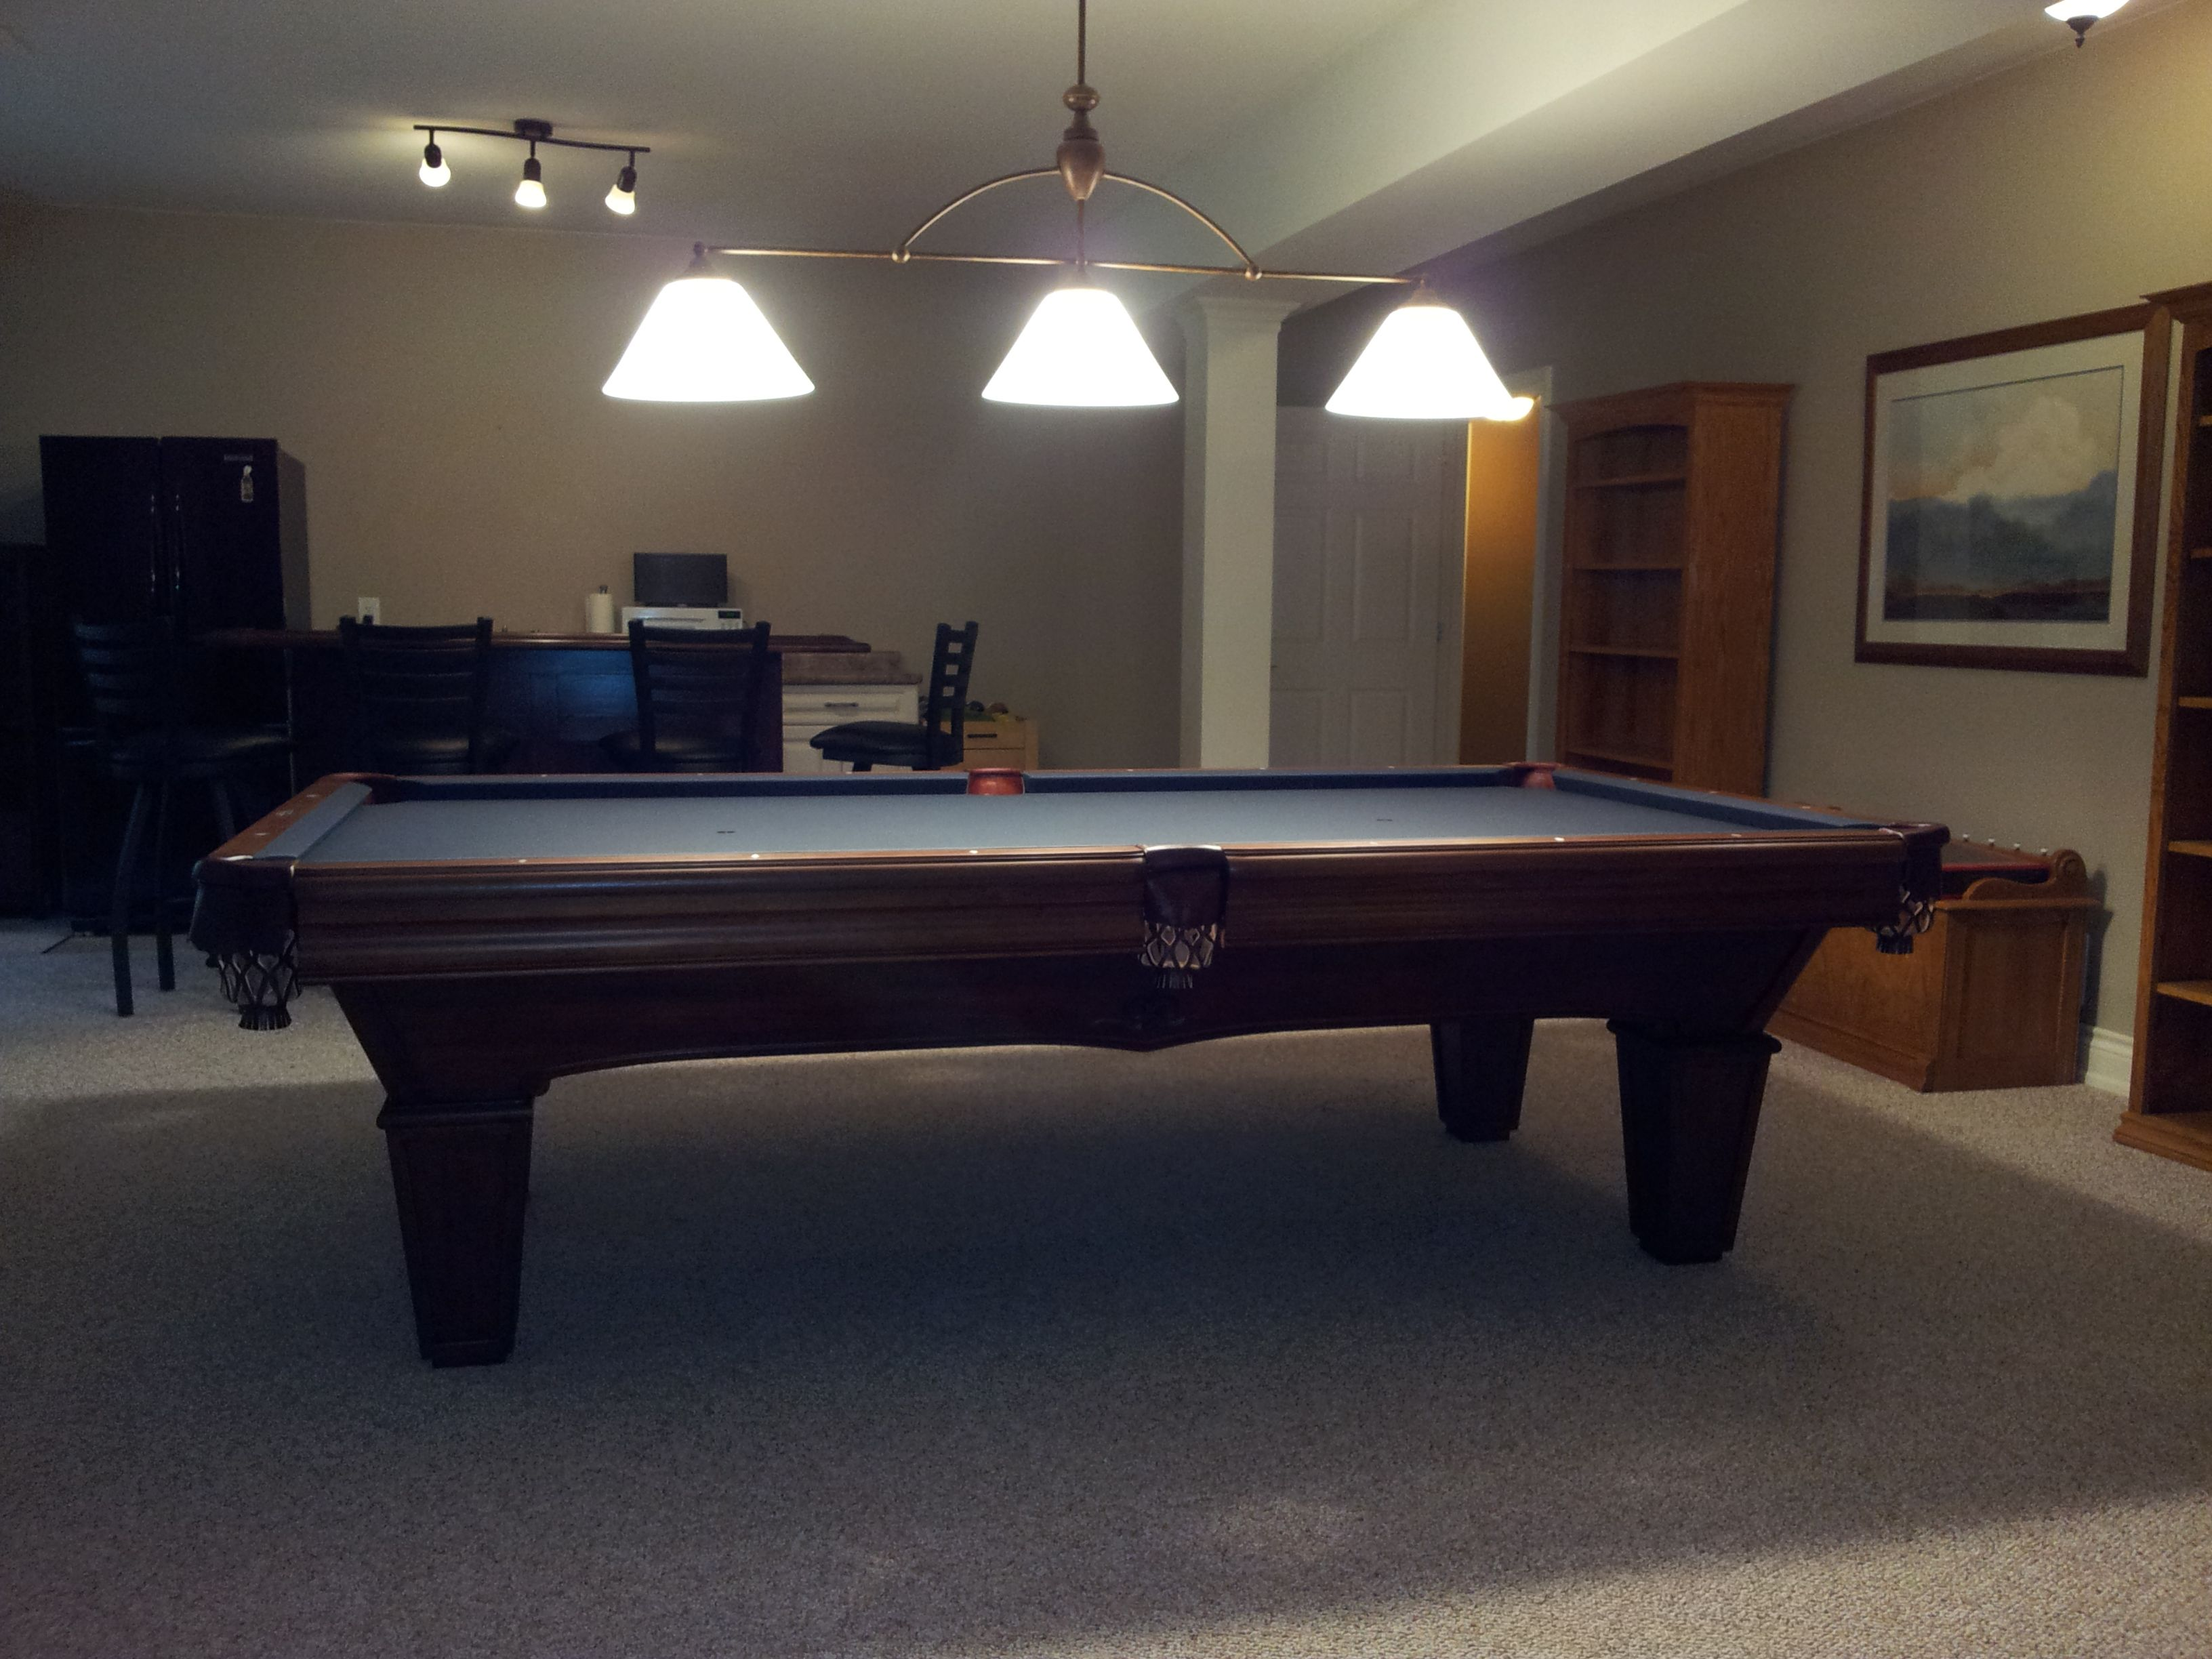 The Brunswick Glenwood Pool Table With A Tapered Leg Is